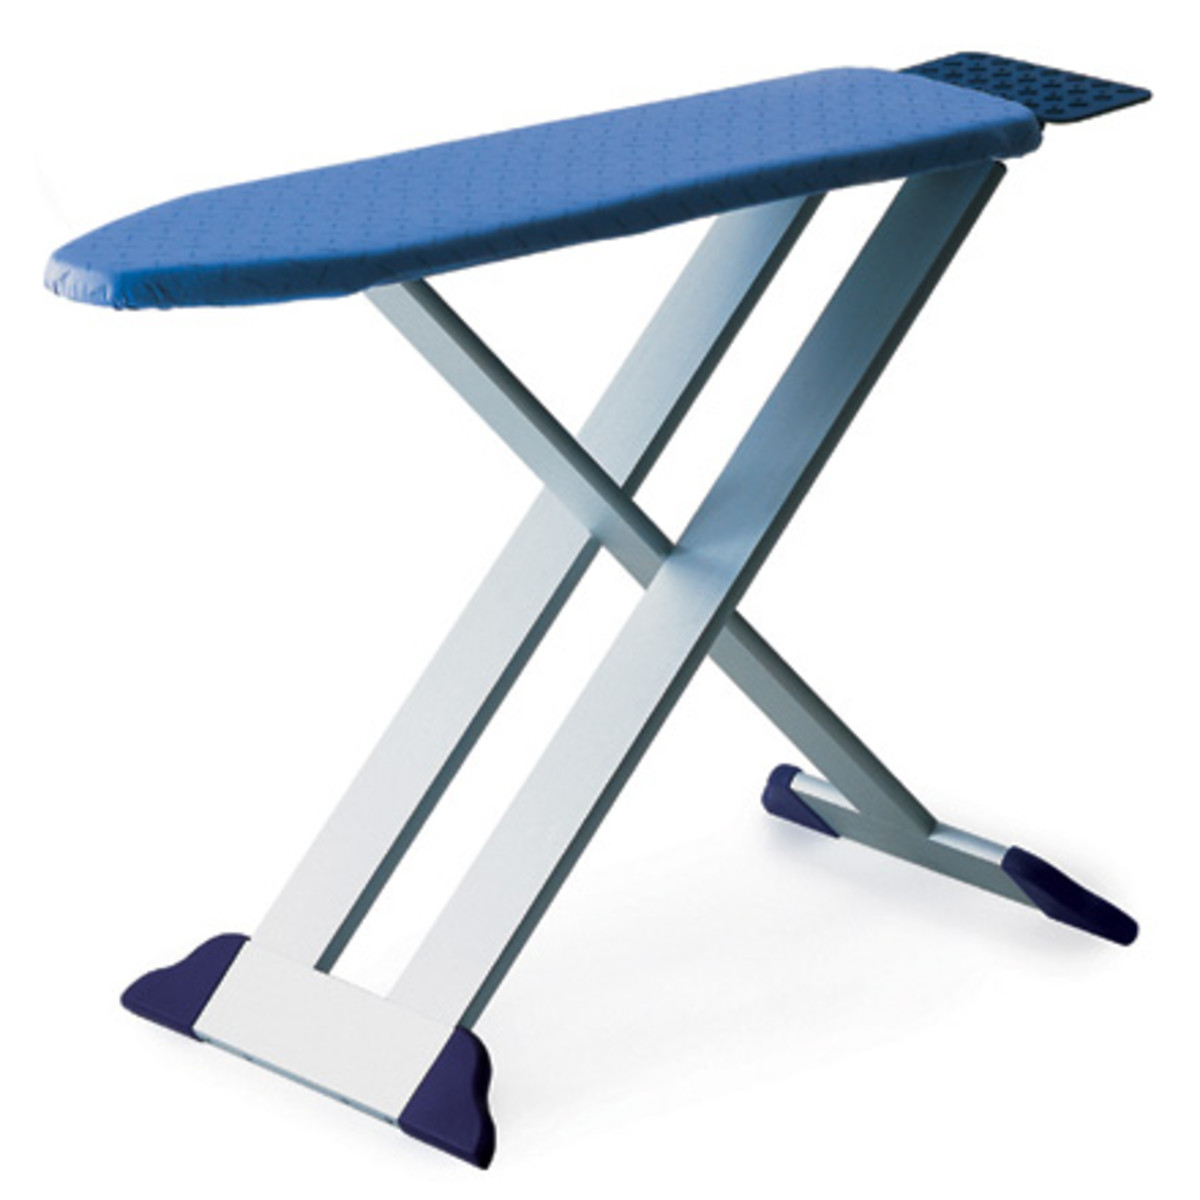 the best ironing board by magis hayinstyle. Black Bedroom Furniture Sets. Home Design Ideas